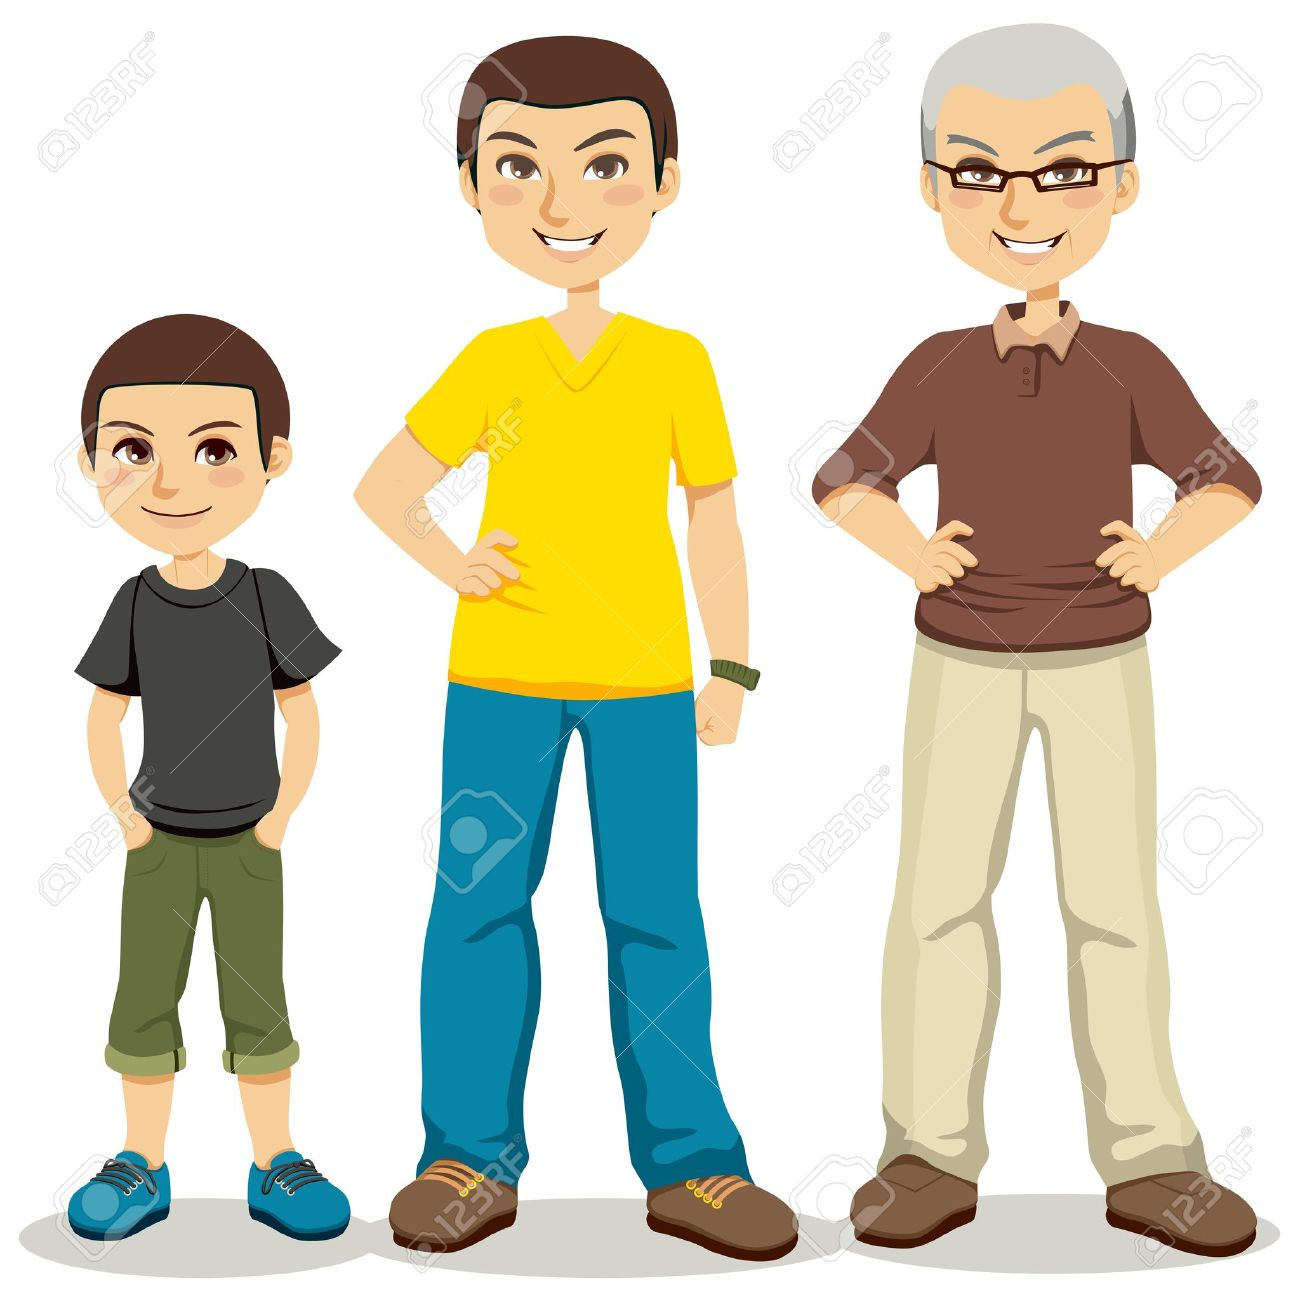 Illustration of three ages of men from child to senior Stock Vector - 10870275